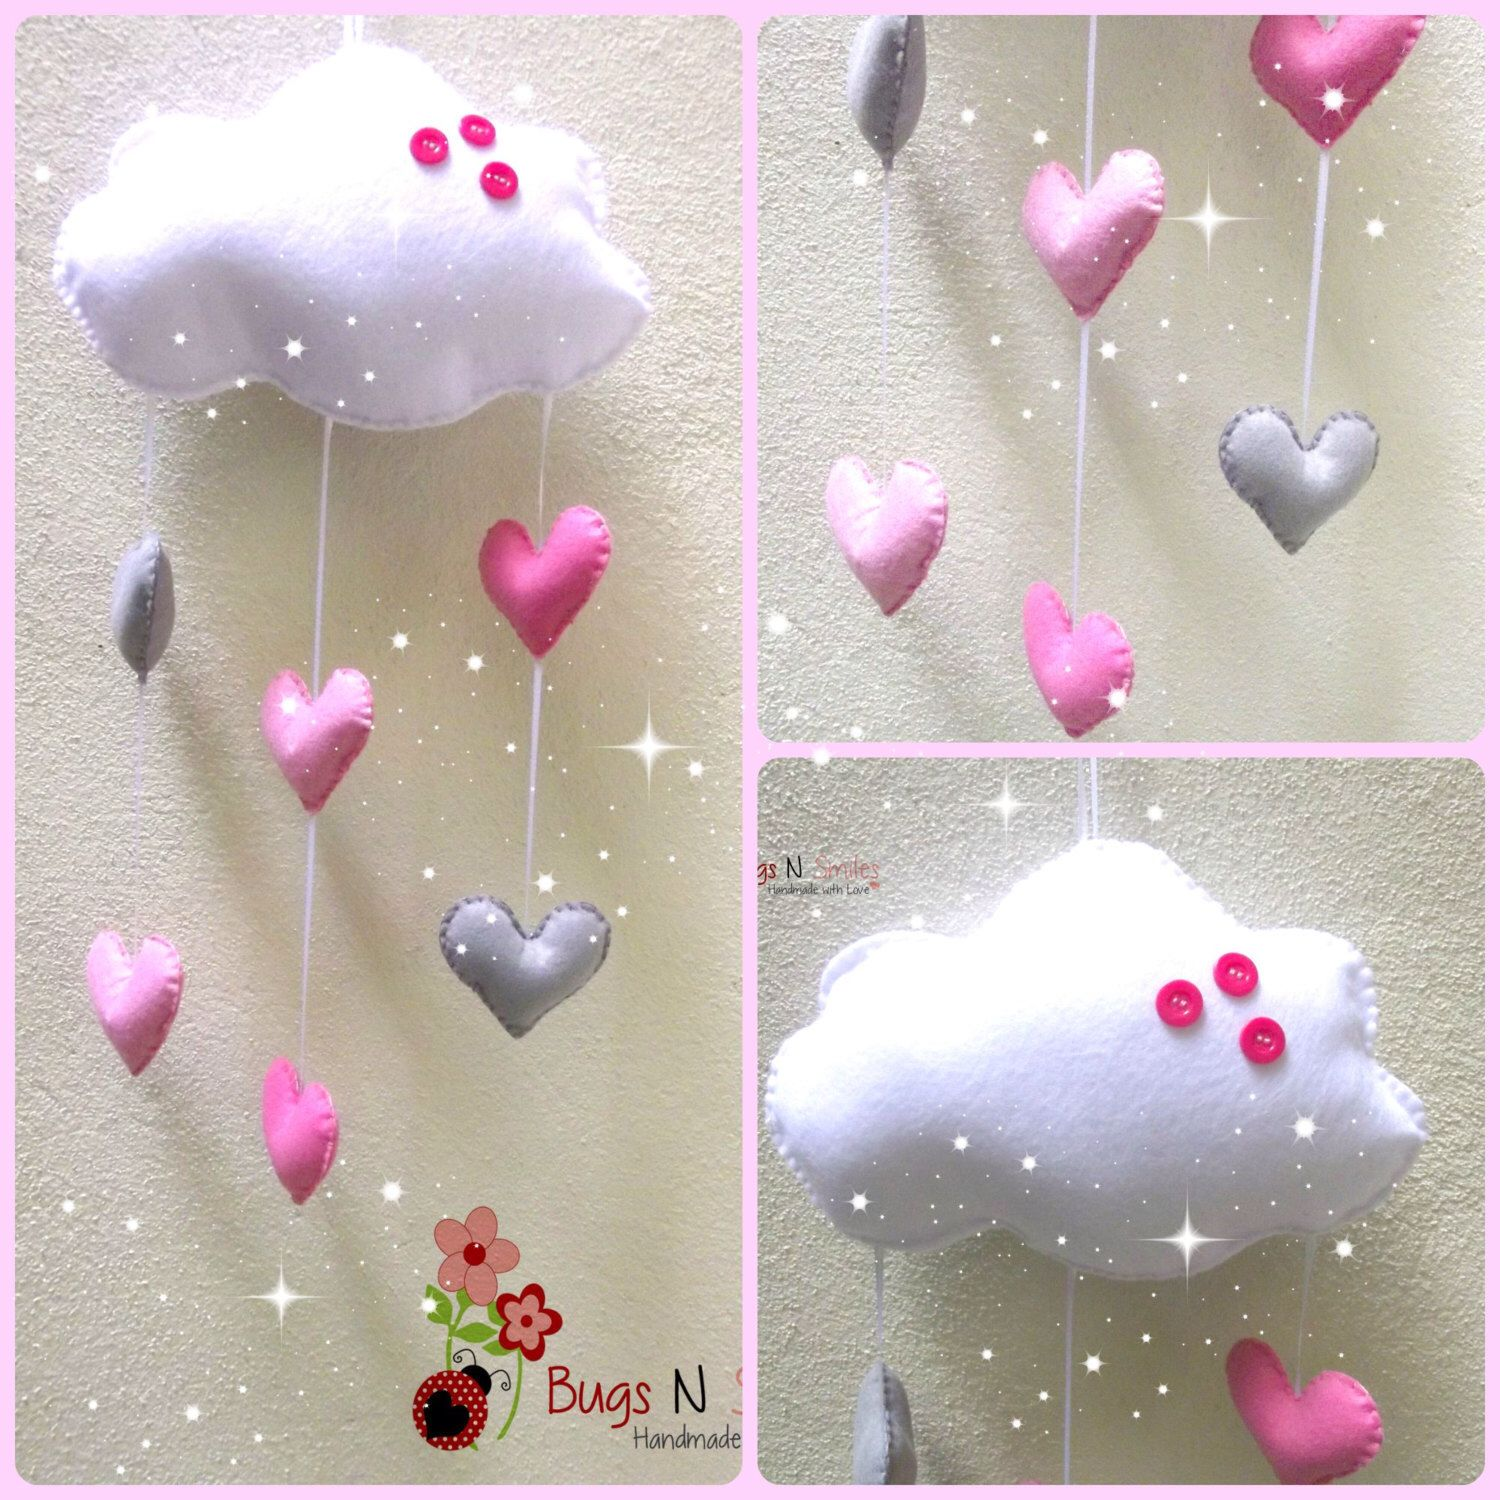 Baby cribs for free - Baby Mobile Nursery Mobile Crib Mobile Cot Mobile Baby Mobiles Nursery Decor Cloud Mobile Baby Girl Mobile Felt Mobile